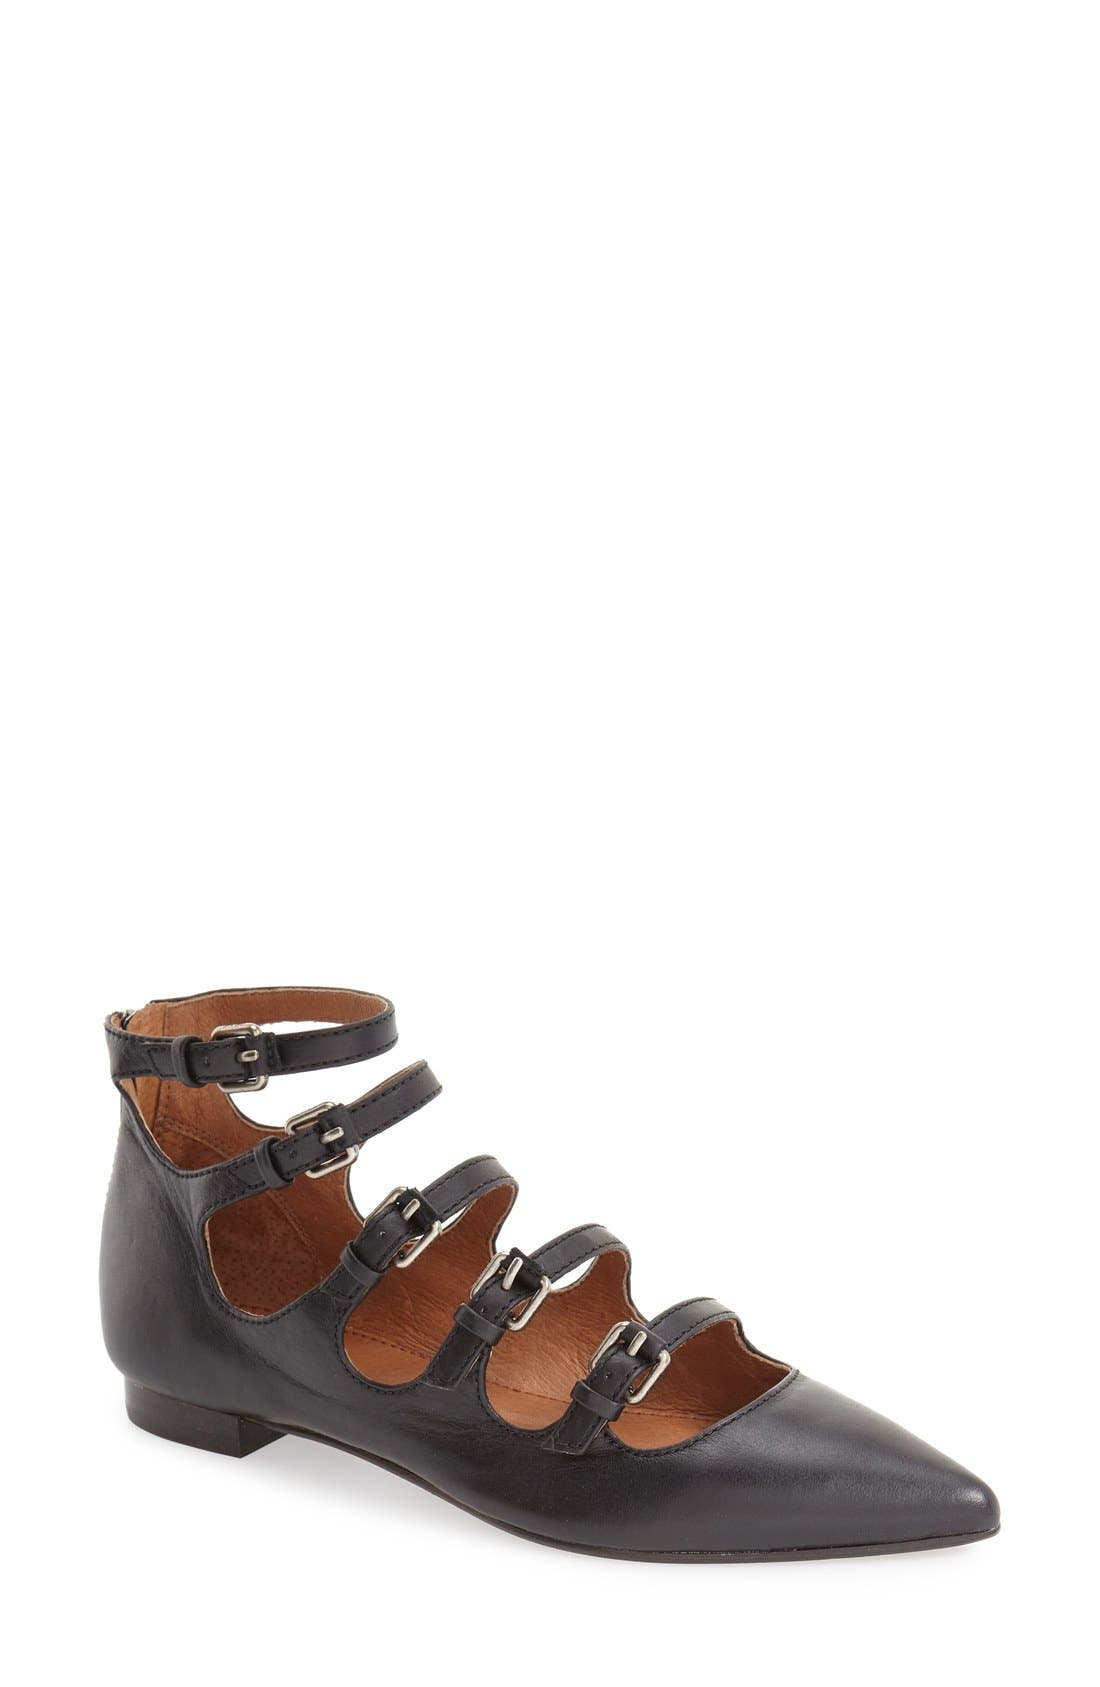 Frye 'Sienna' Pointy Toe Buckle Strap Flat (Women)